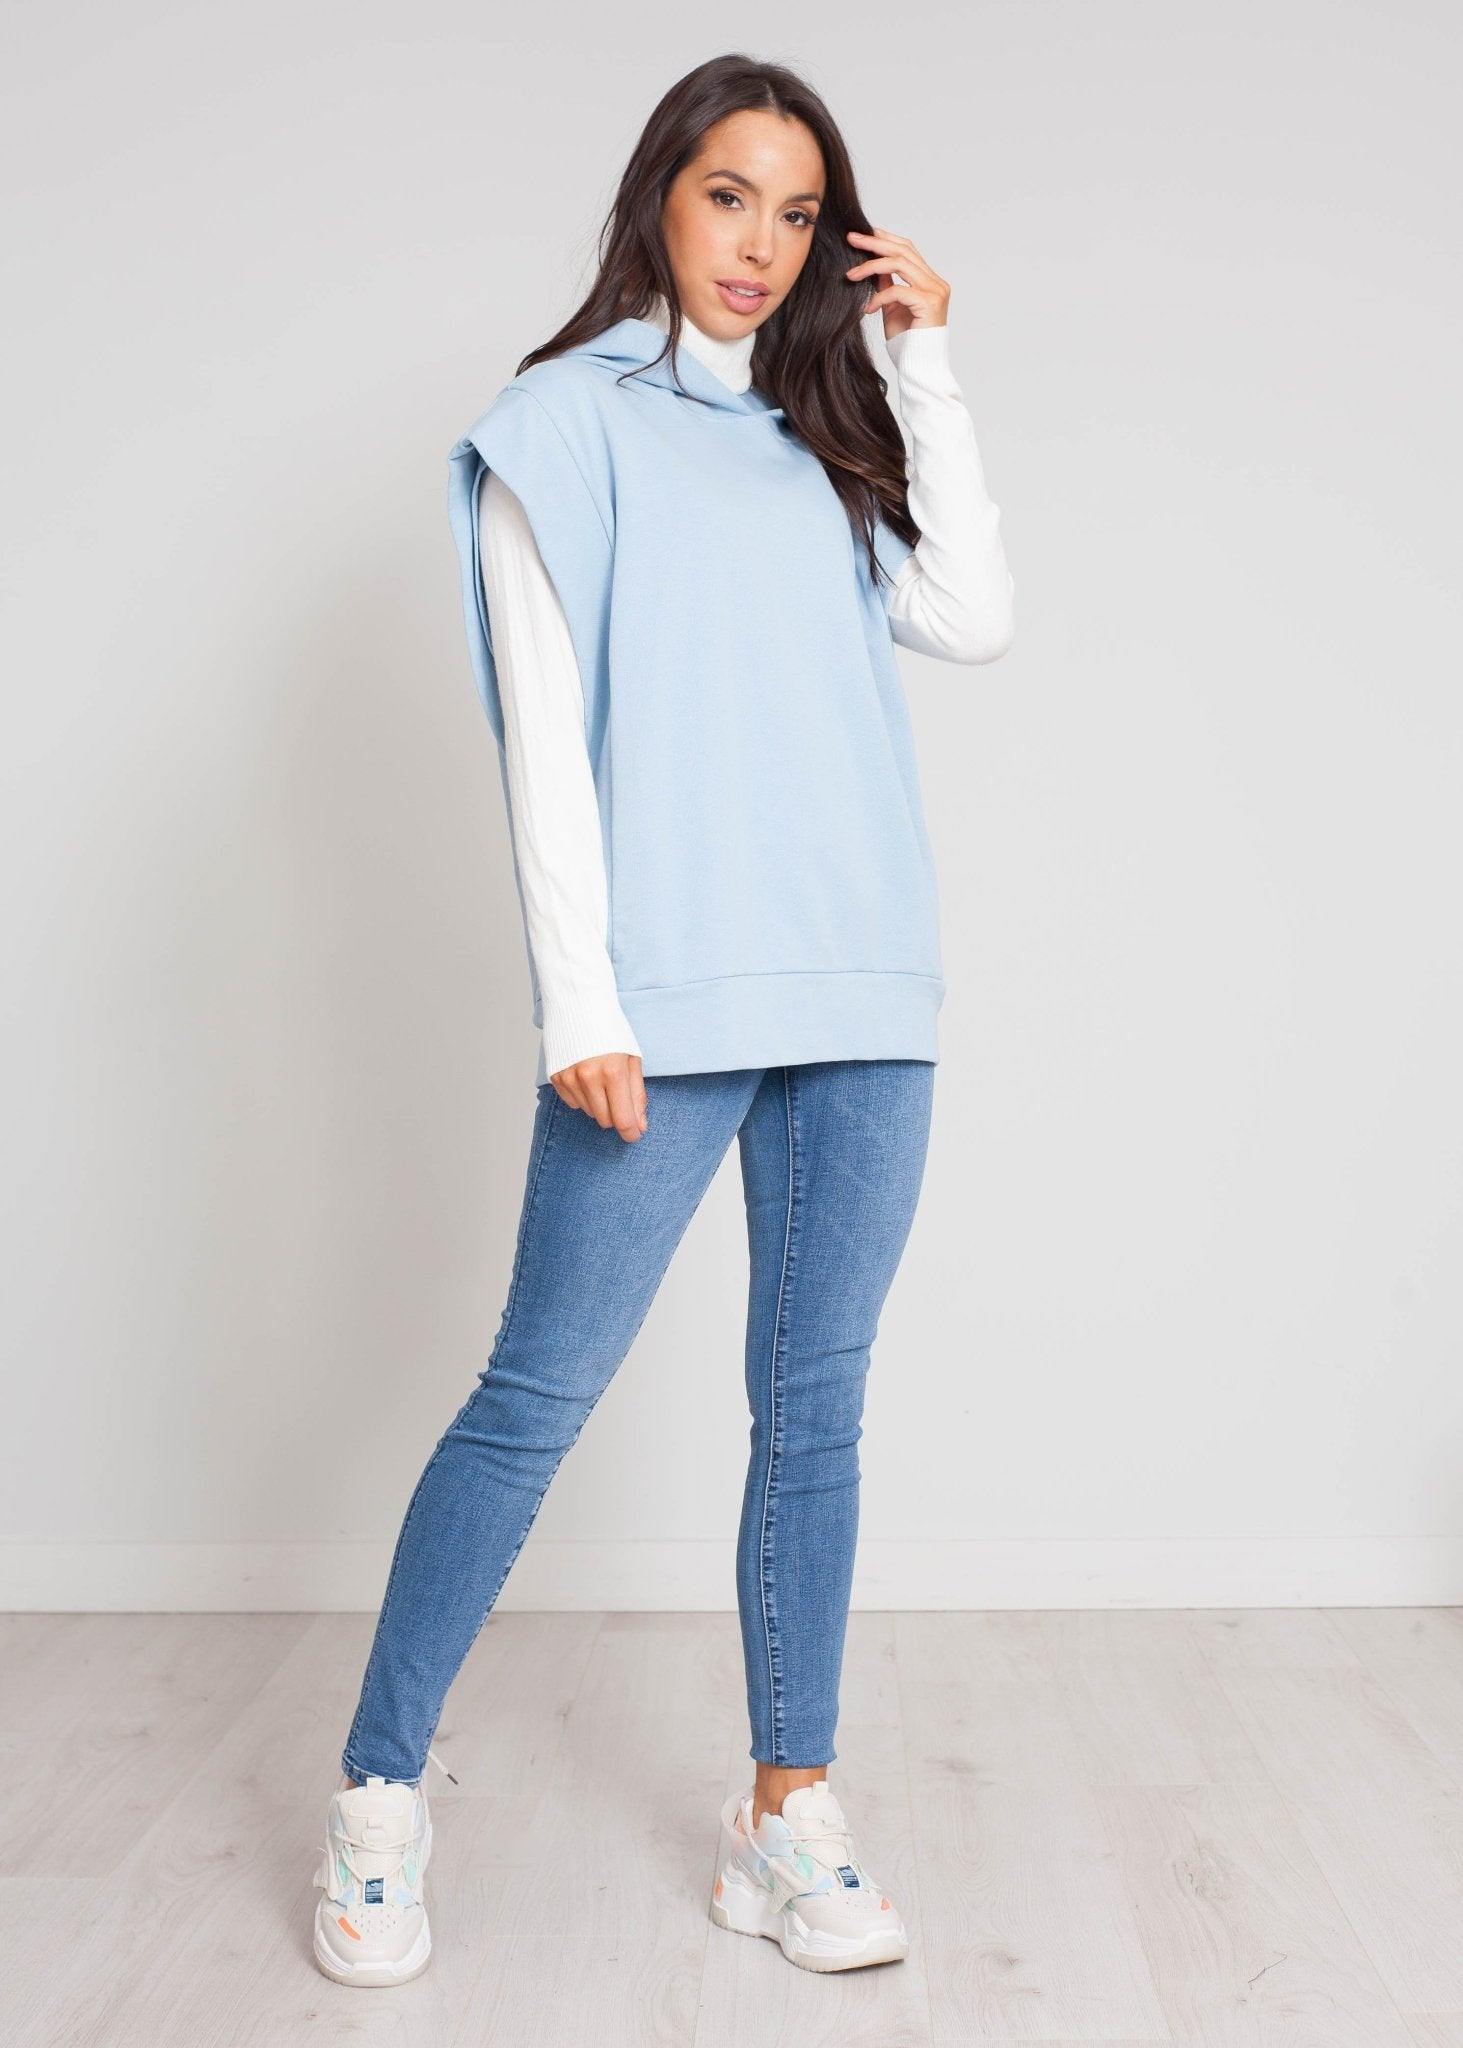 Emilia Sleeveless Hoodie In Blue - The Walk in Wardrobe